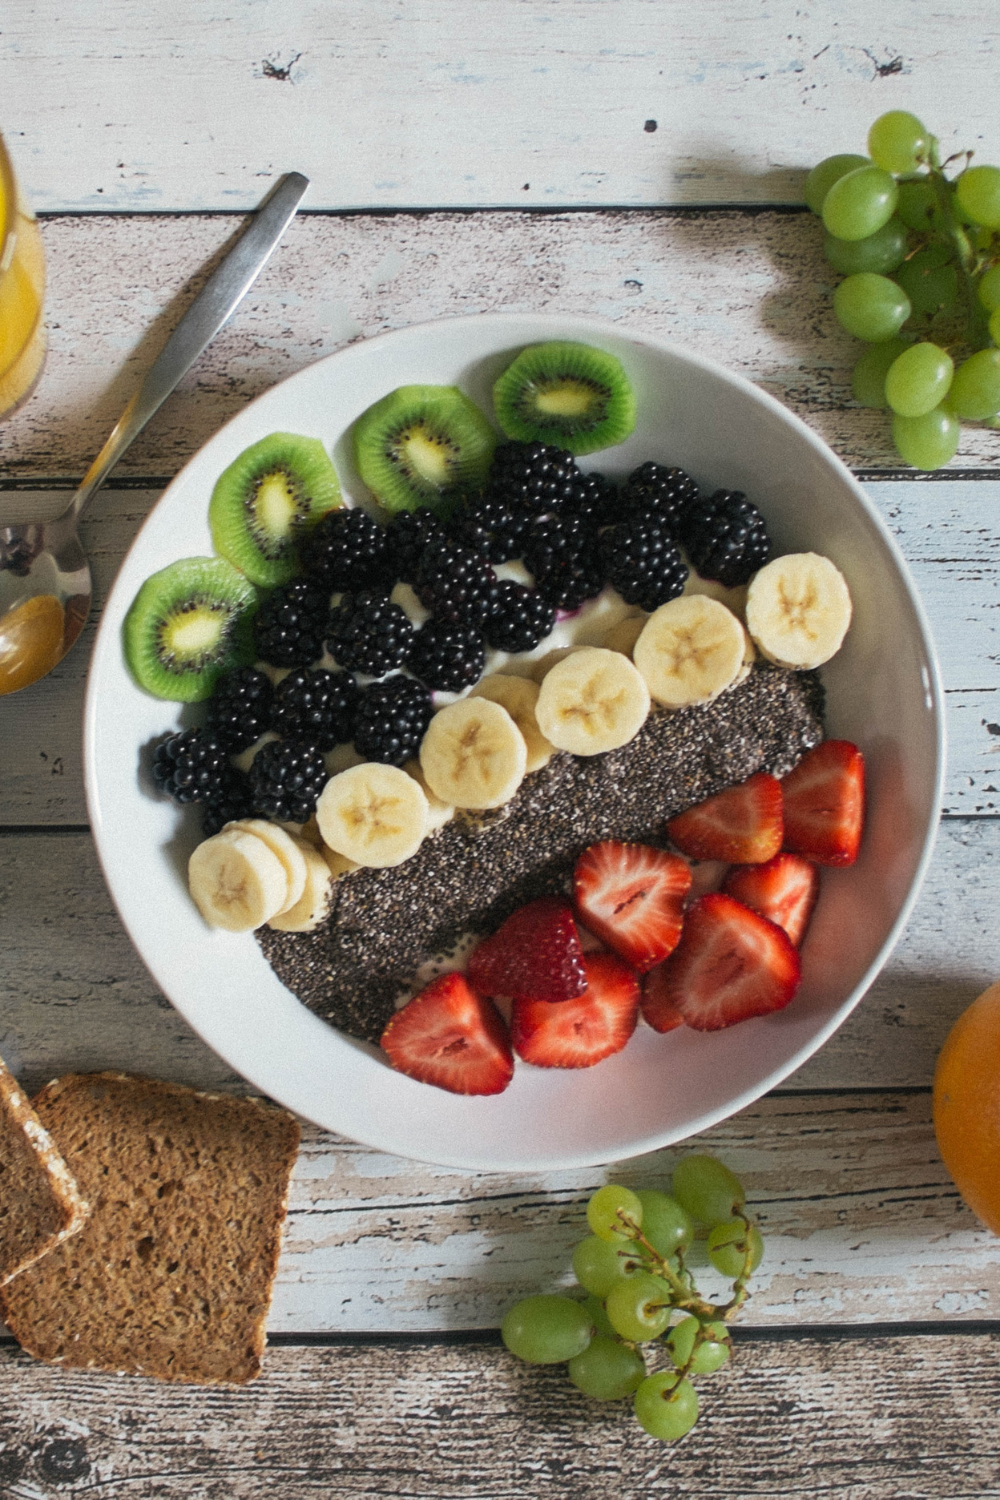 5 easy and nutritious vegan breakfasts to get 3 of your 5-a-day